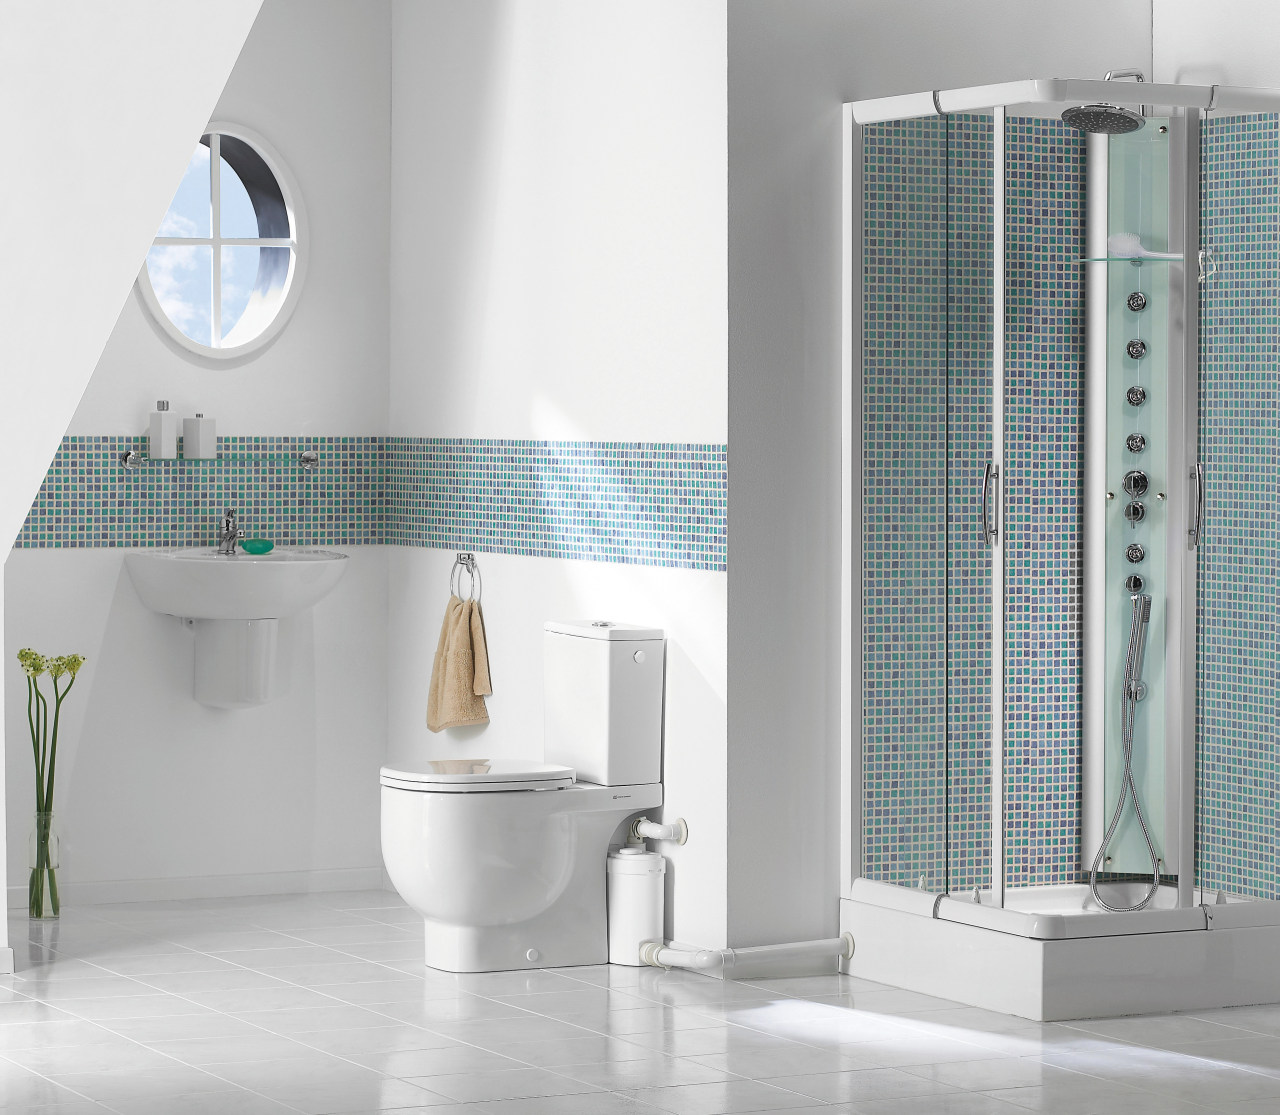 View of a bathroom which features Saniflo pumps. bathroom, bathroom accessory, bathroom cabinet, floor, interior design, plumbing fixture, product, product design, tap, tile, white, gray